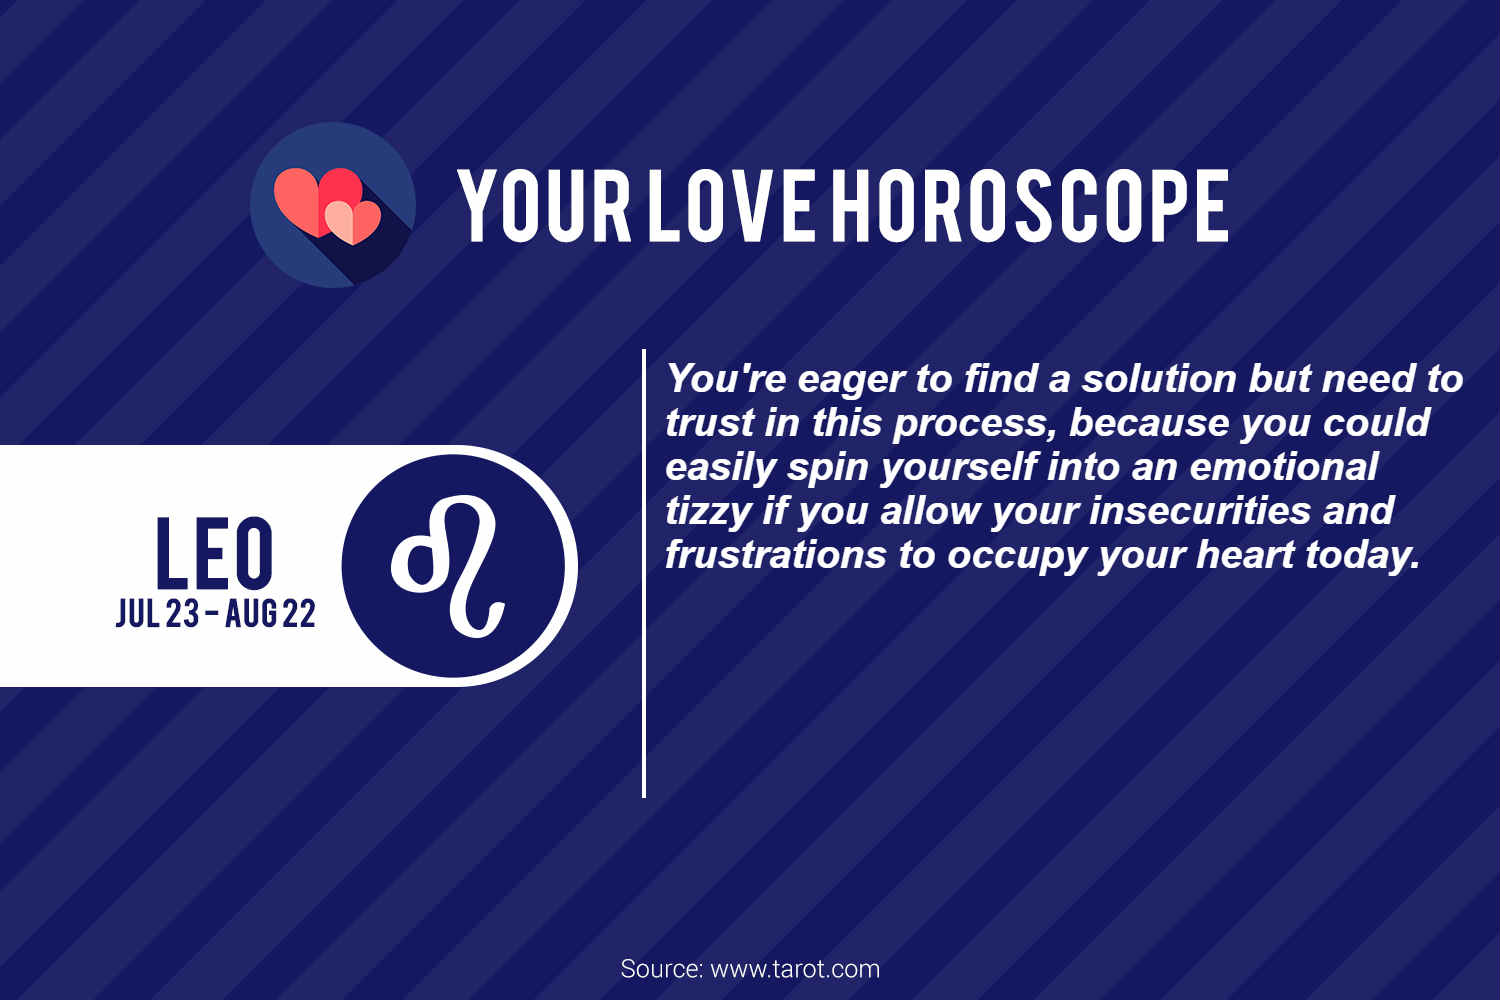 leo-love-horoscope-image-for-inuth